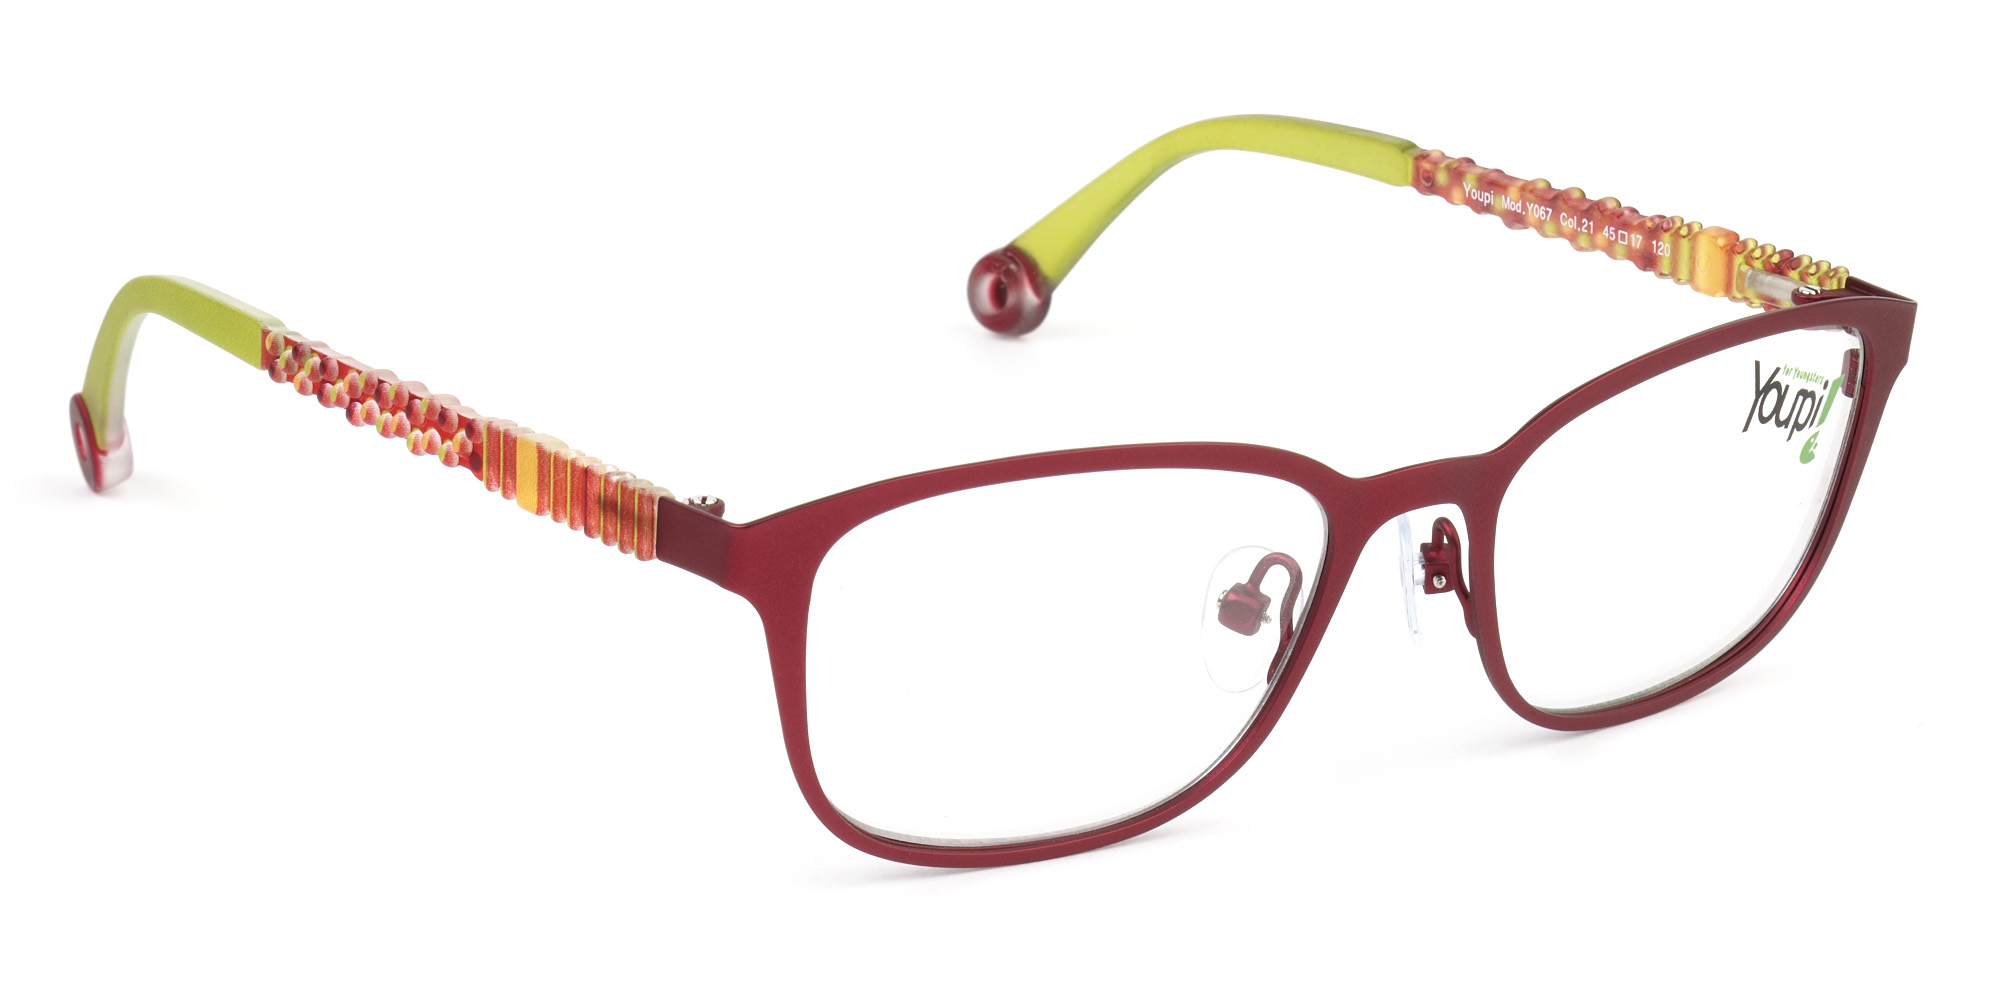 Glasses Frames Netherlands : pessimism of the intellect, optimism of the will: Blake ...